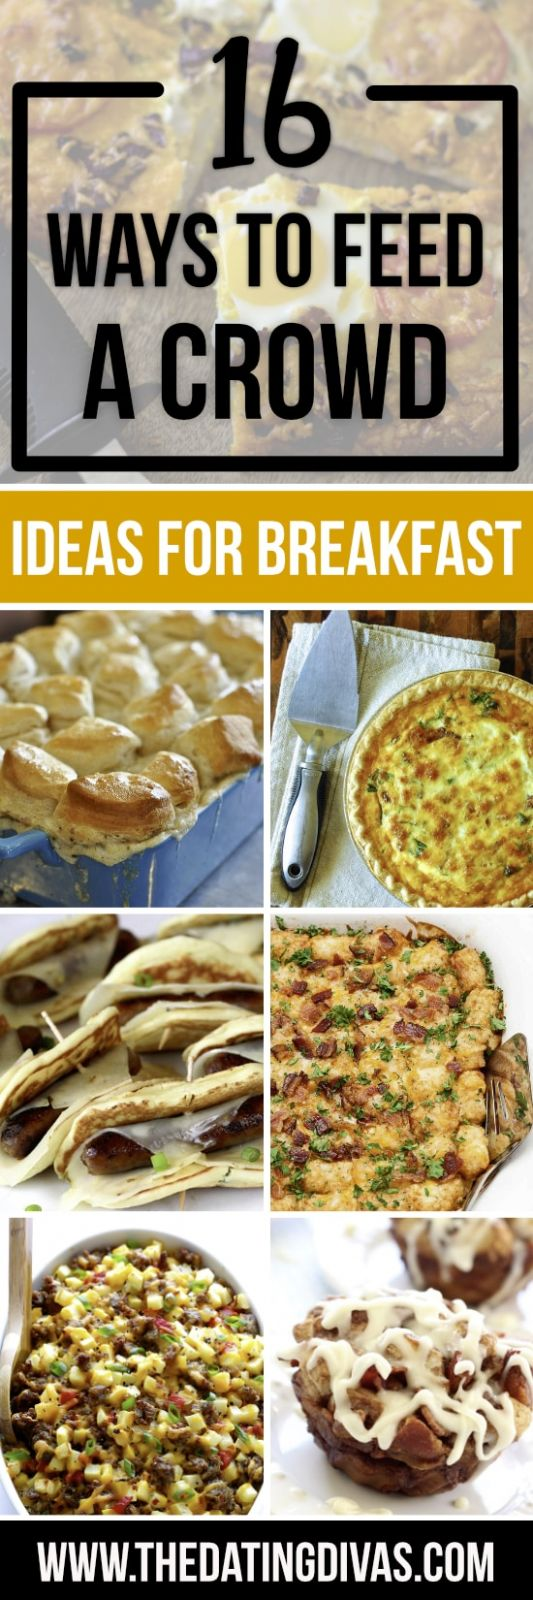 Easy Ways to Feed a Crowd - From  Dating Divas - Breakfast Recipes To Feed A Crowd